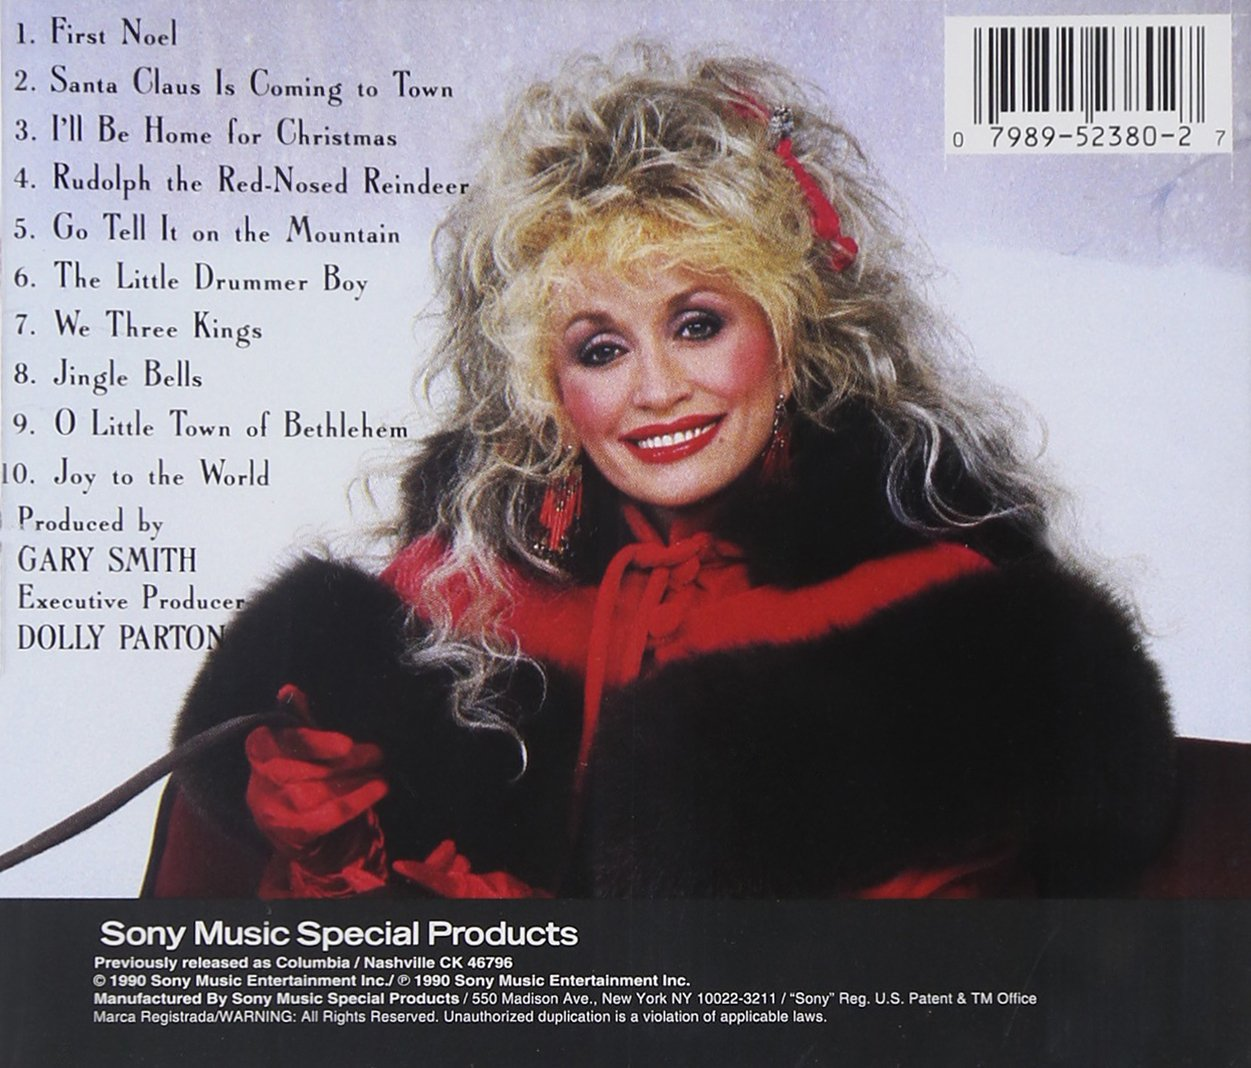 dolly parton home for christmas amazoncom music